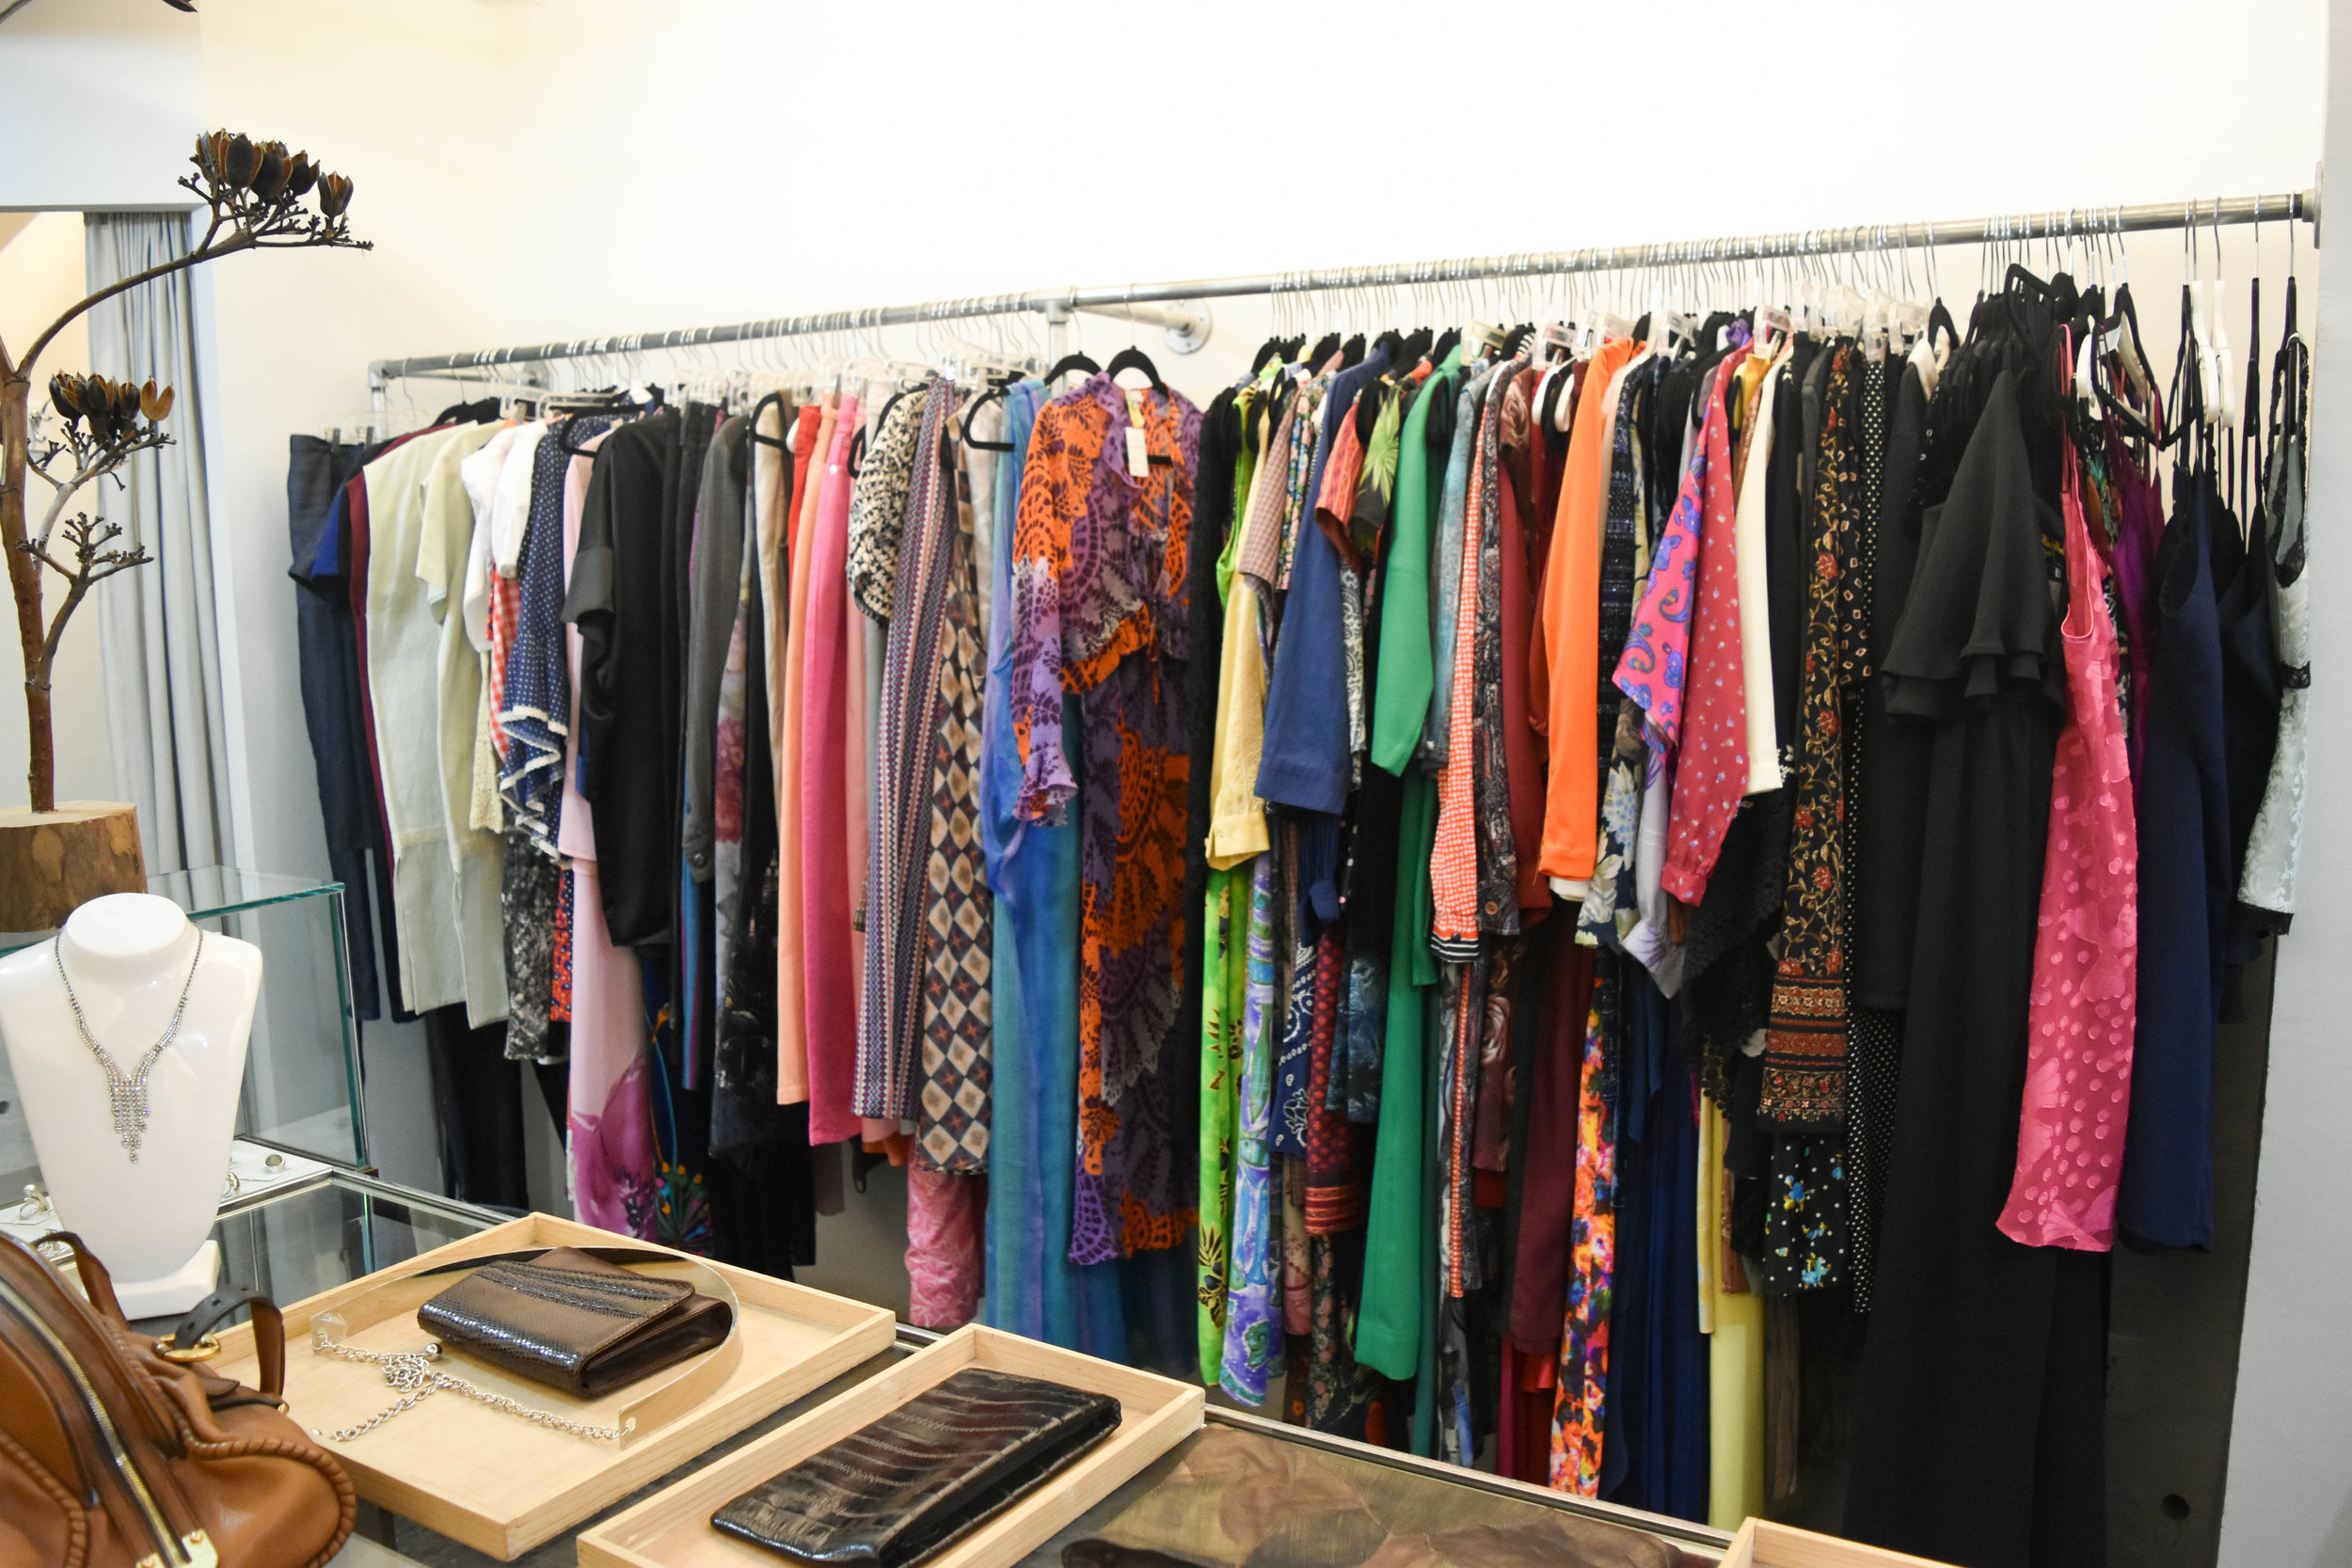 You will find colorful vintage blouses and dresses, designer and non-designer.